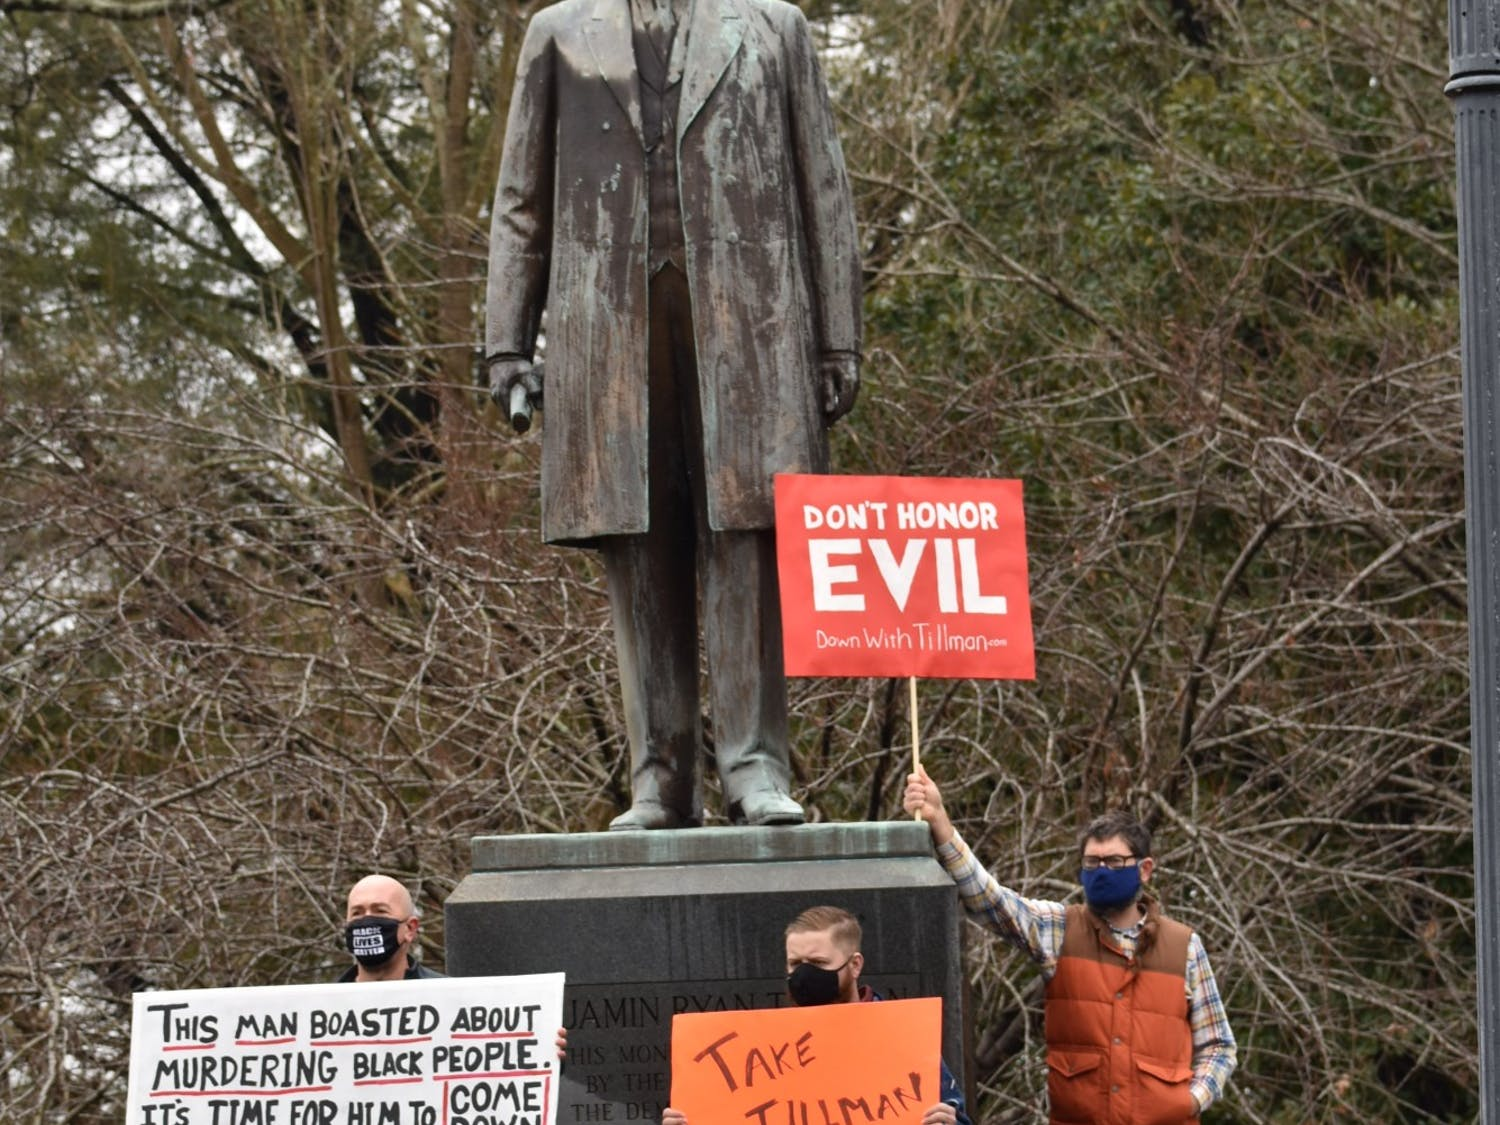 Protestors stand in front of the Benjamin Tillman statue located at the South Carolina Statehouse. The protestors called for the removal of the statue based on Benjamin Tillman's history.